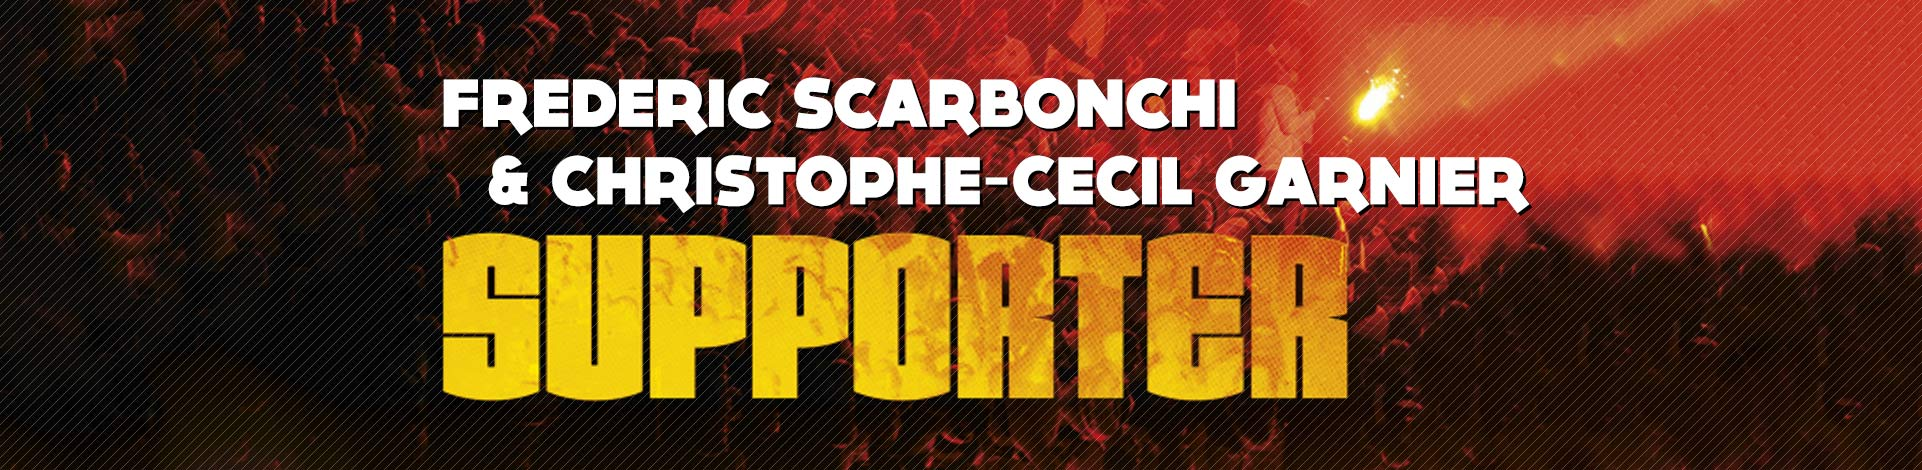 Interview Frederic Scarbonchi & Christophe-Cecil Garnier Virage